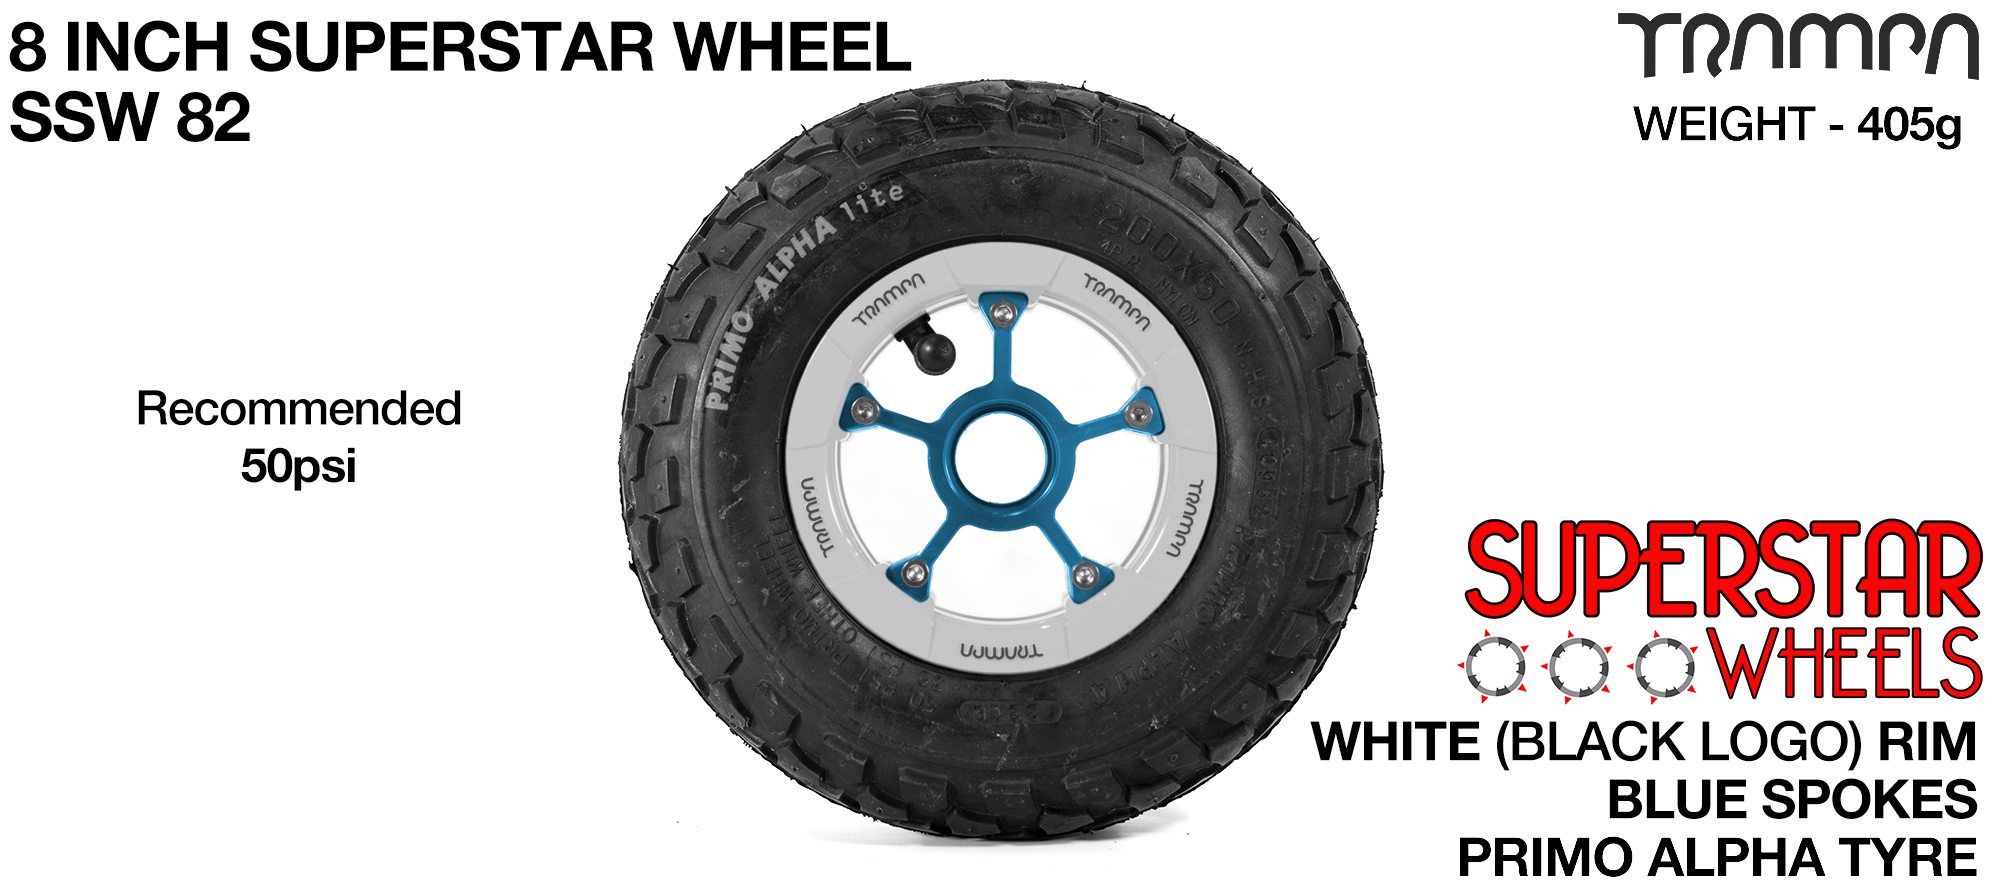 Superstar 8 inch wheel - White Gloss & Black logo Rim Blue Anodised Spokes & Black Alpha 8 Inch Tyre